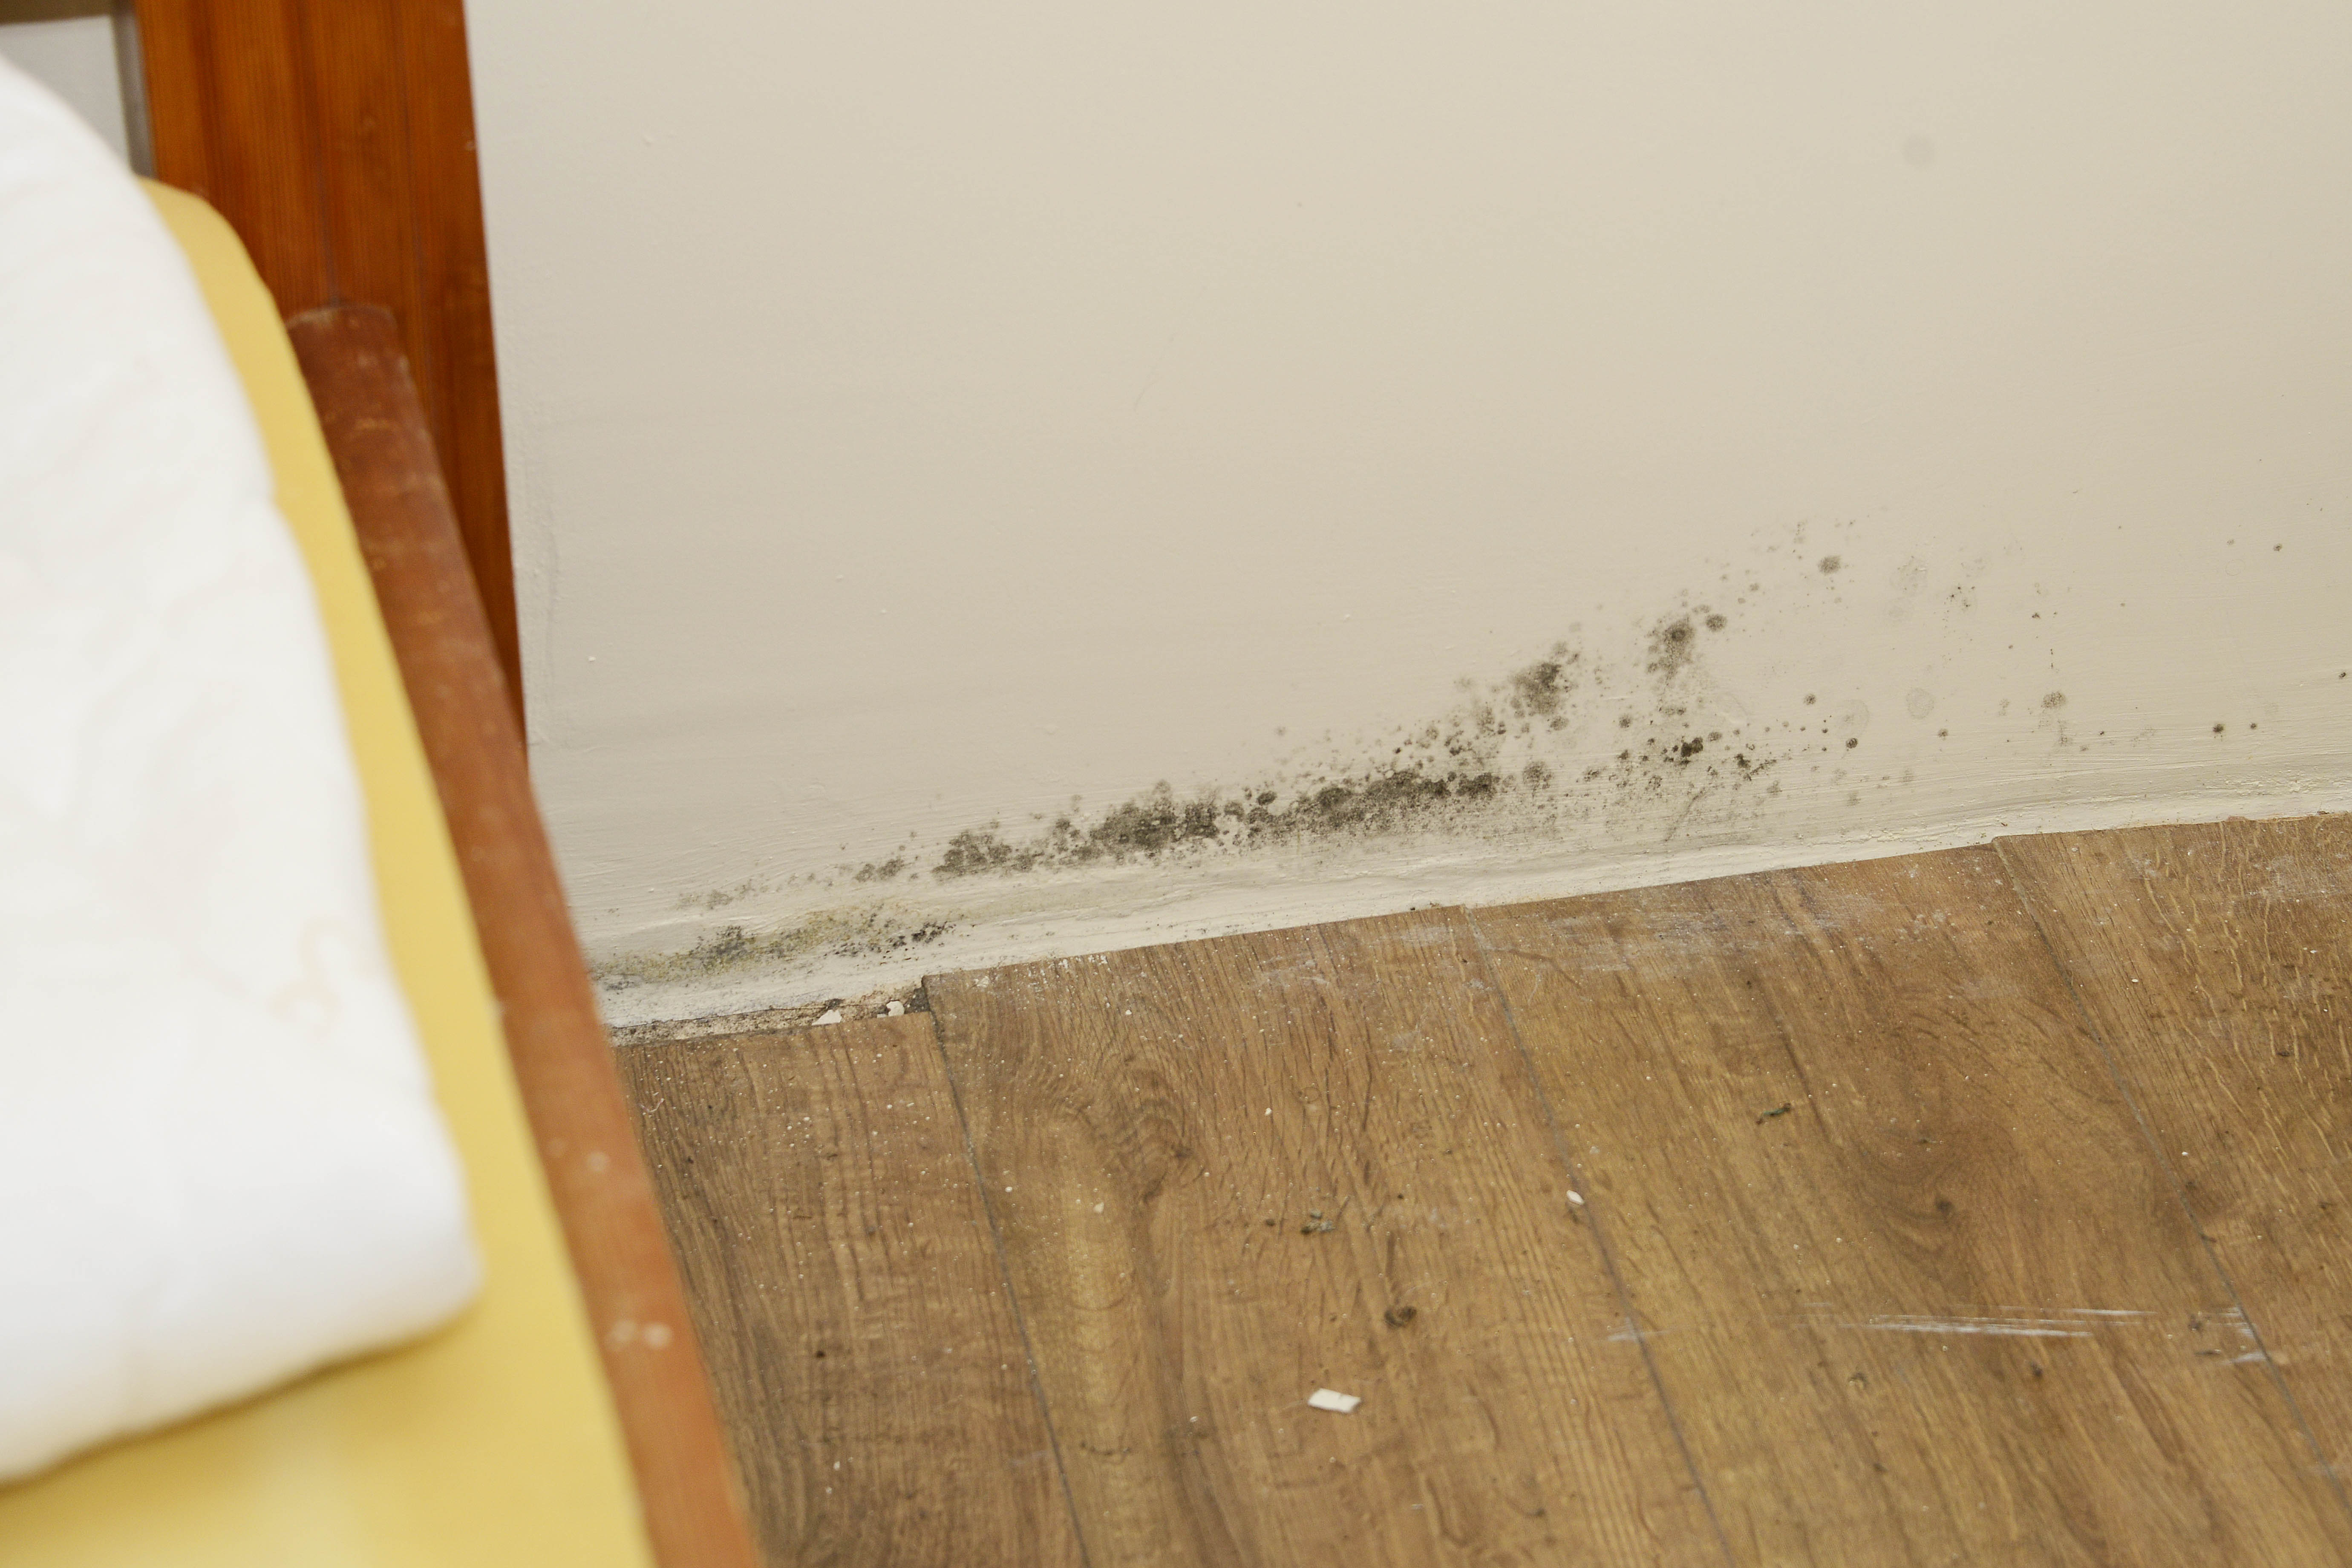 Damp occurs when ground water travels upwards through porous building materials such as brick, sandstone or mortar.